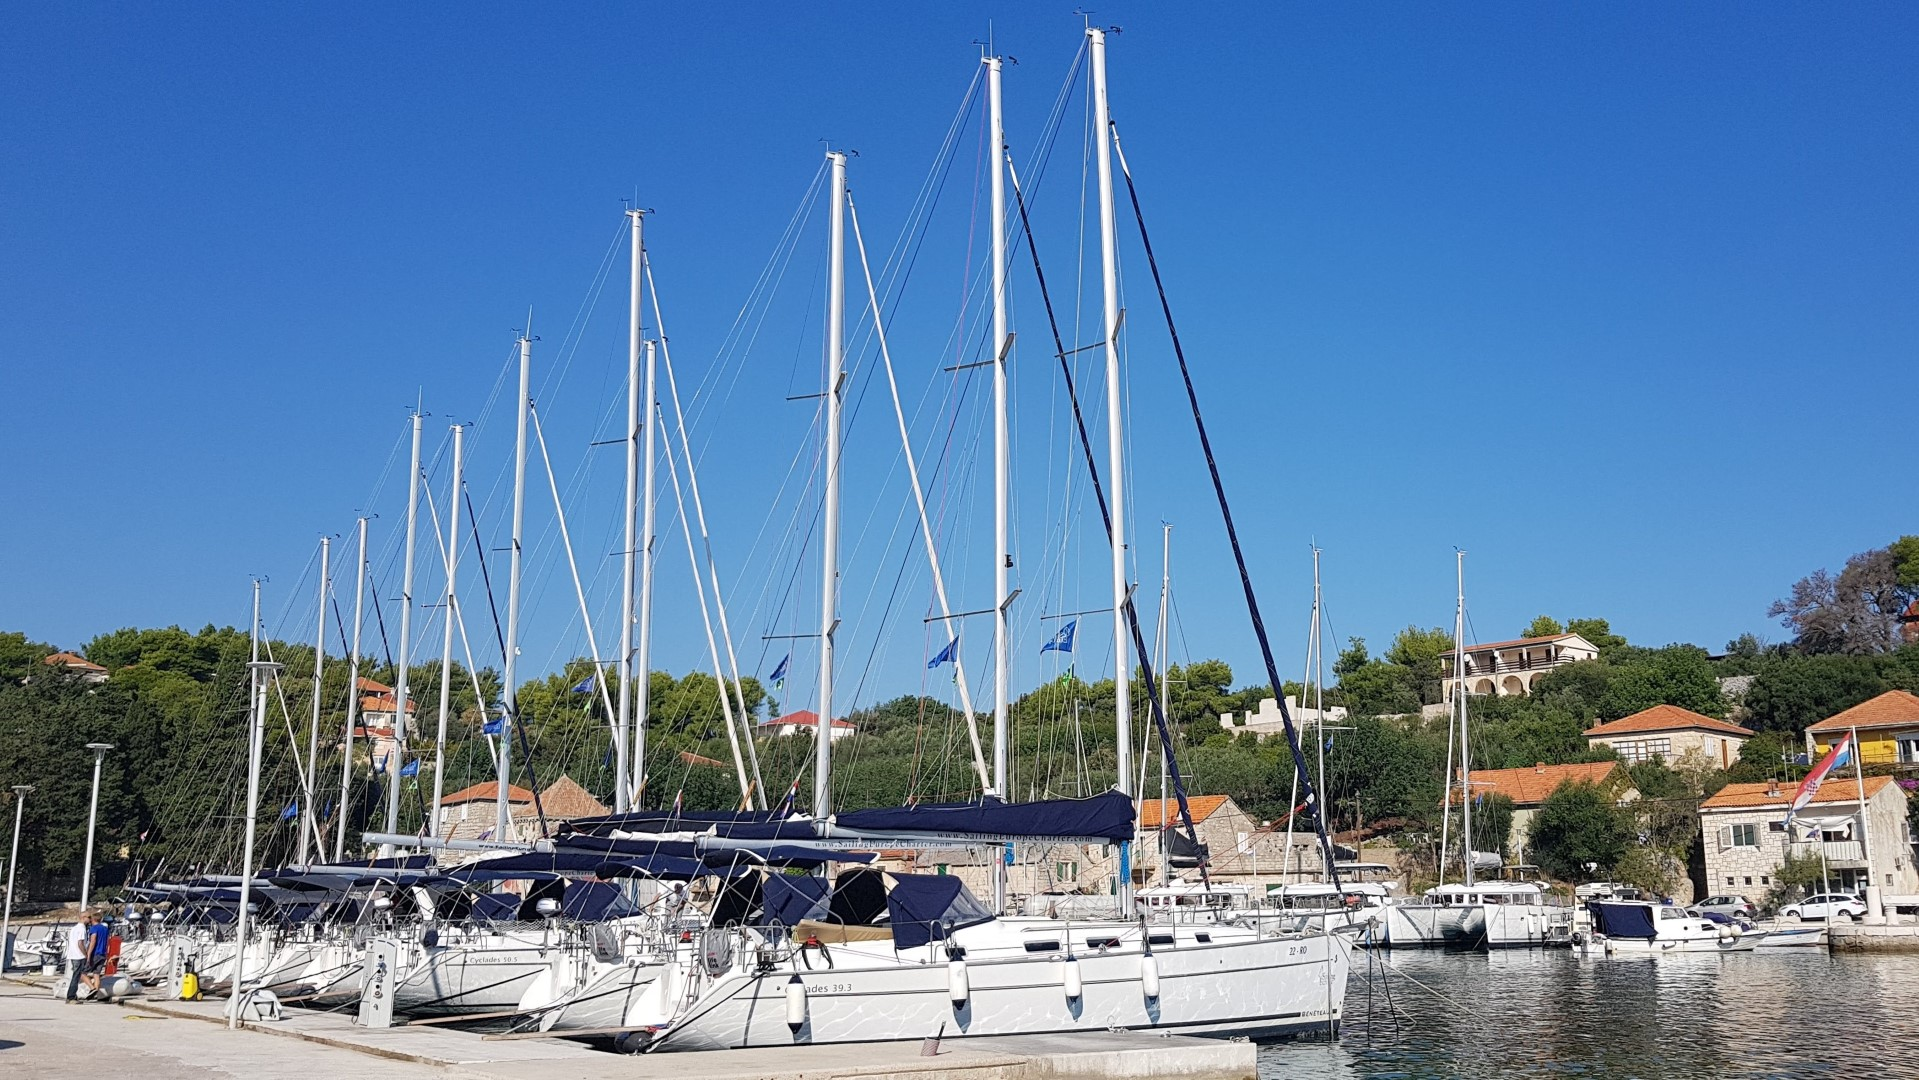 Lagoon 42 (GALAPAGOS) Marina Rogač - sailboats (photo taken 2019) - 20